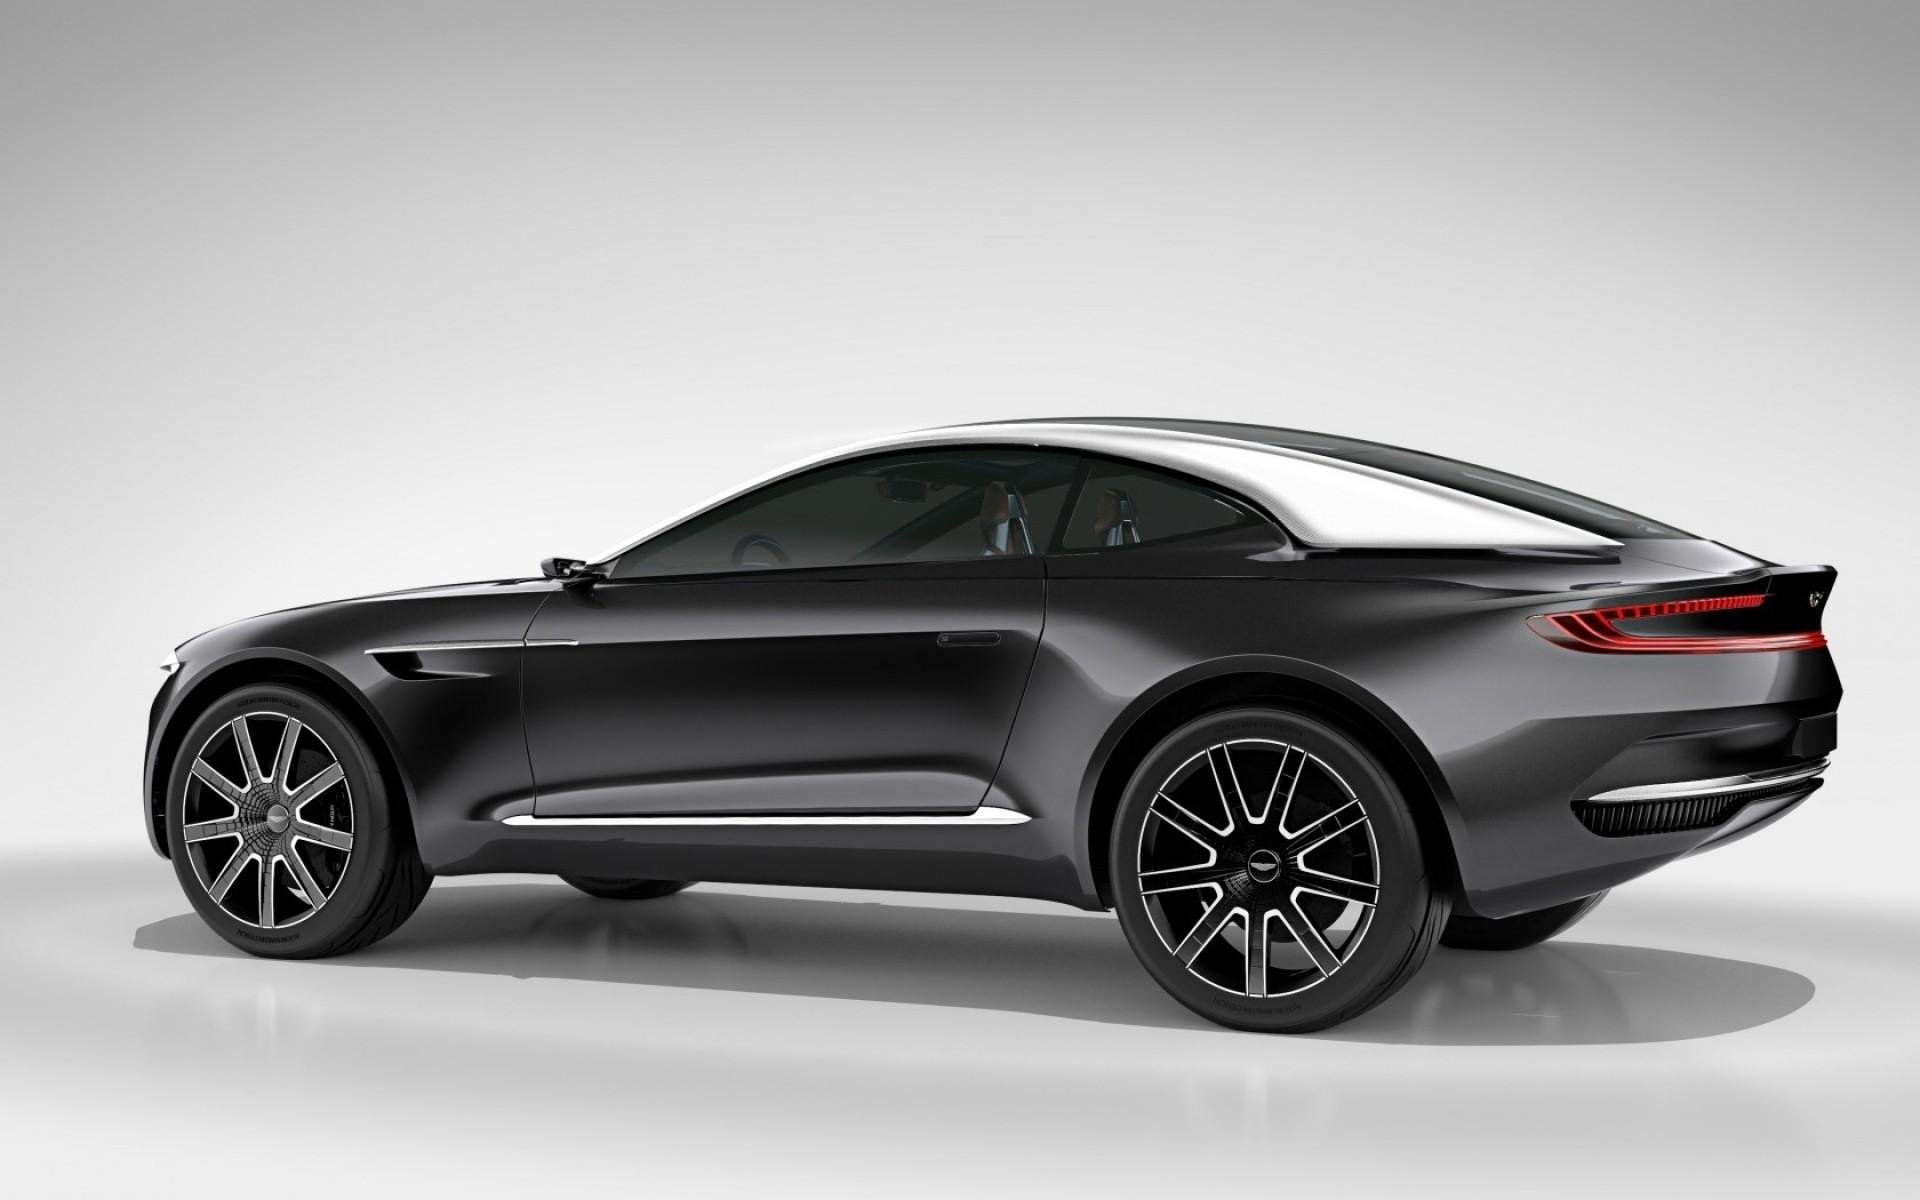 Aston Martin DBX Concept Side View. Android wallpapers for free